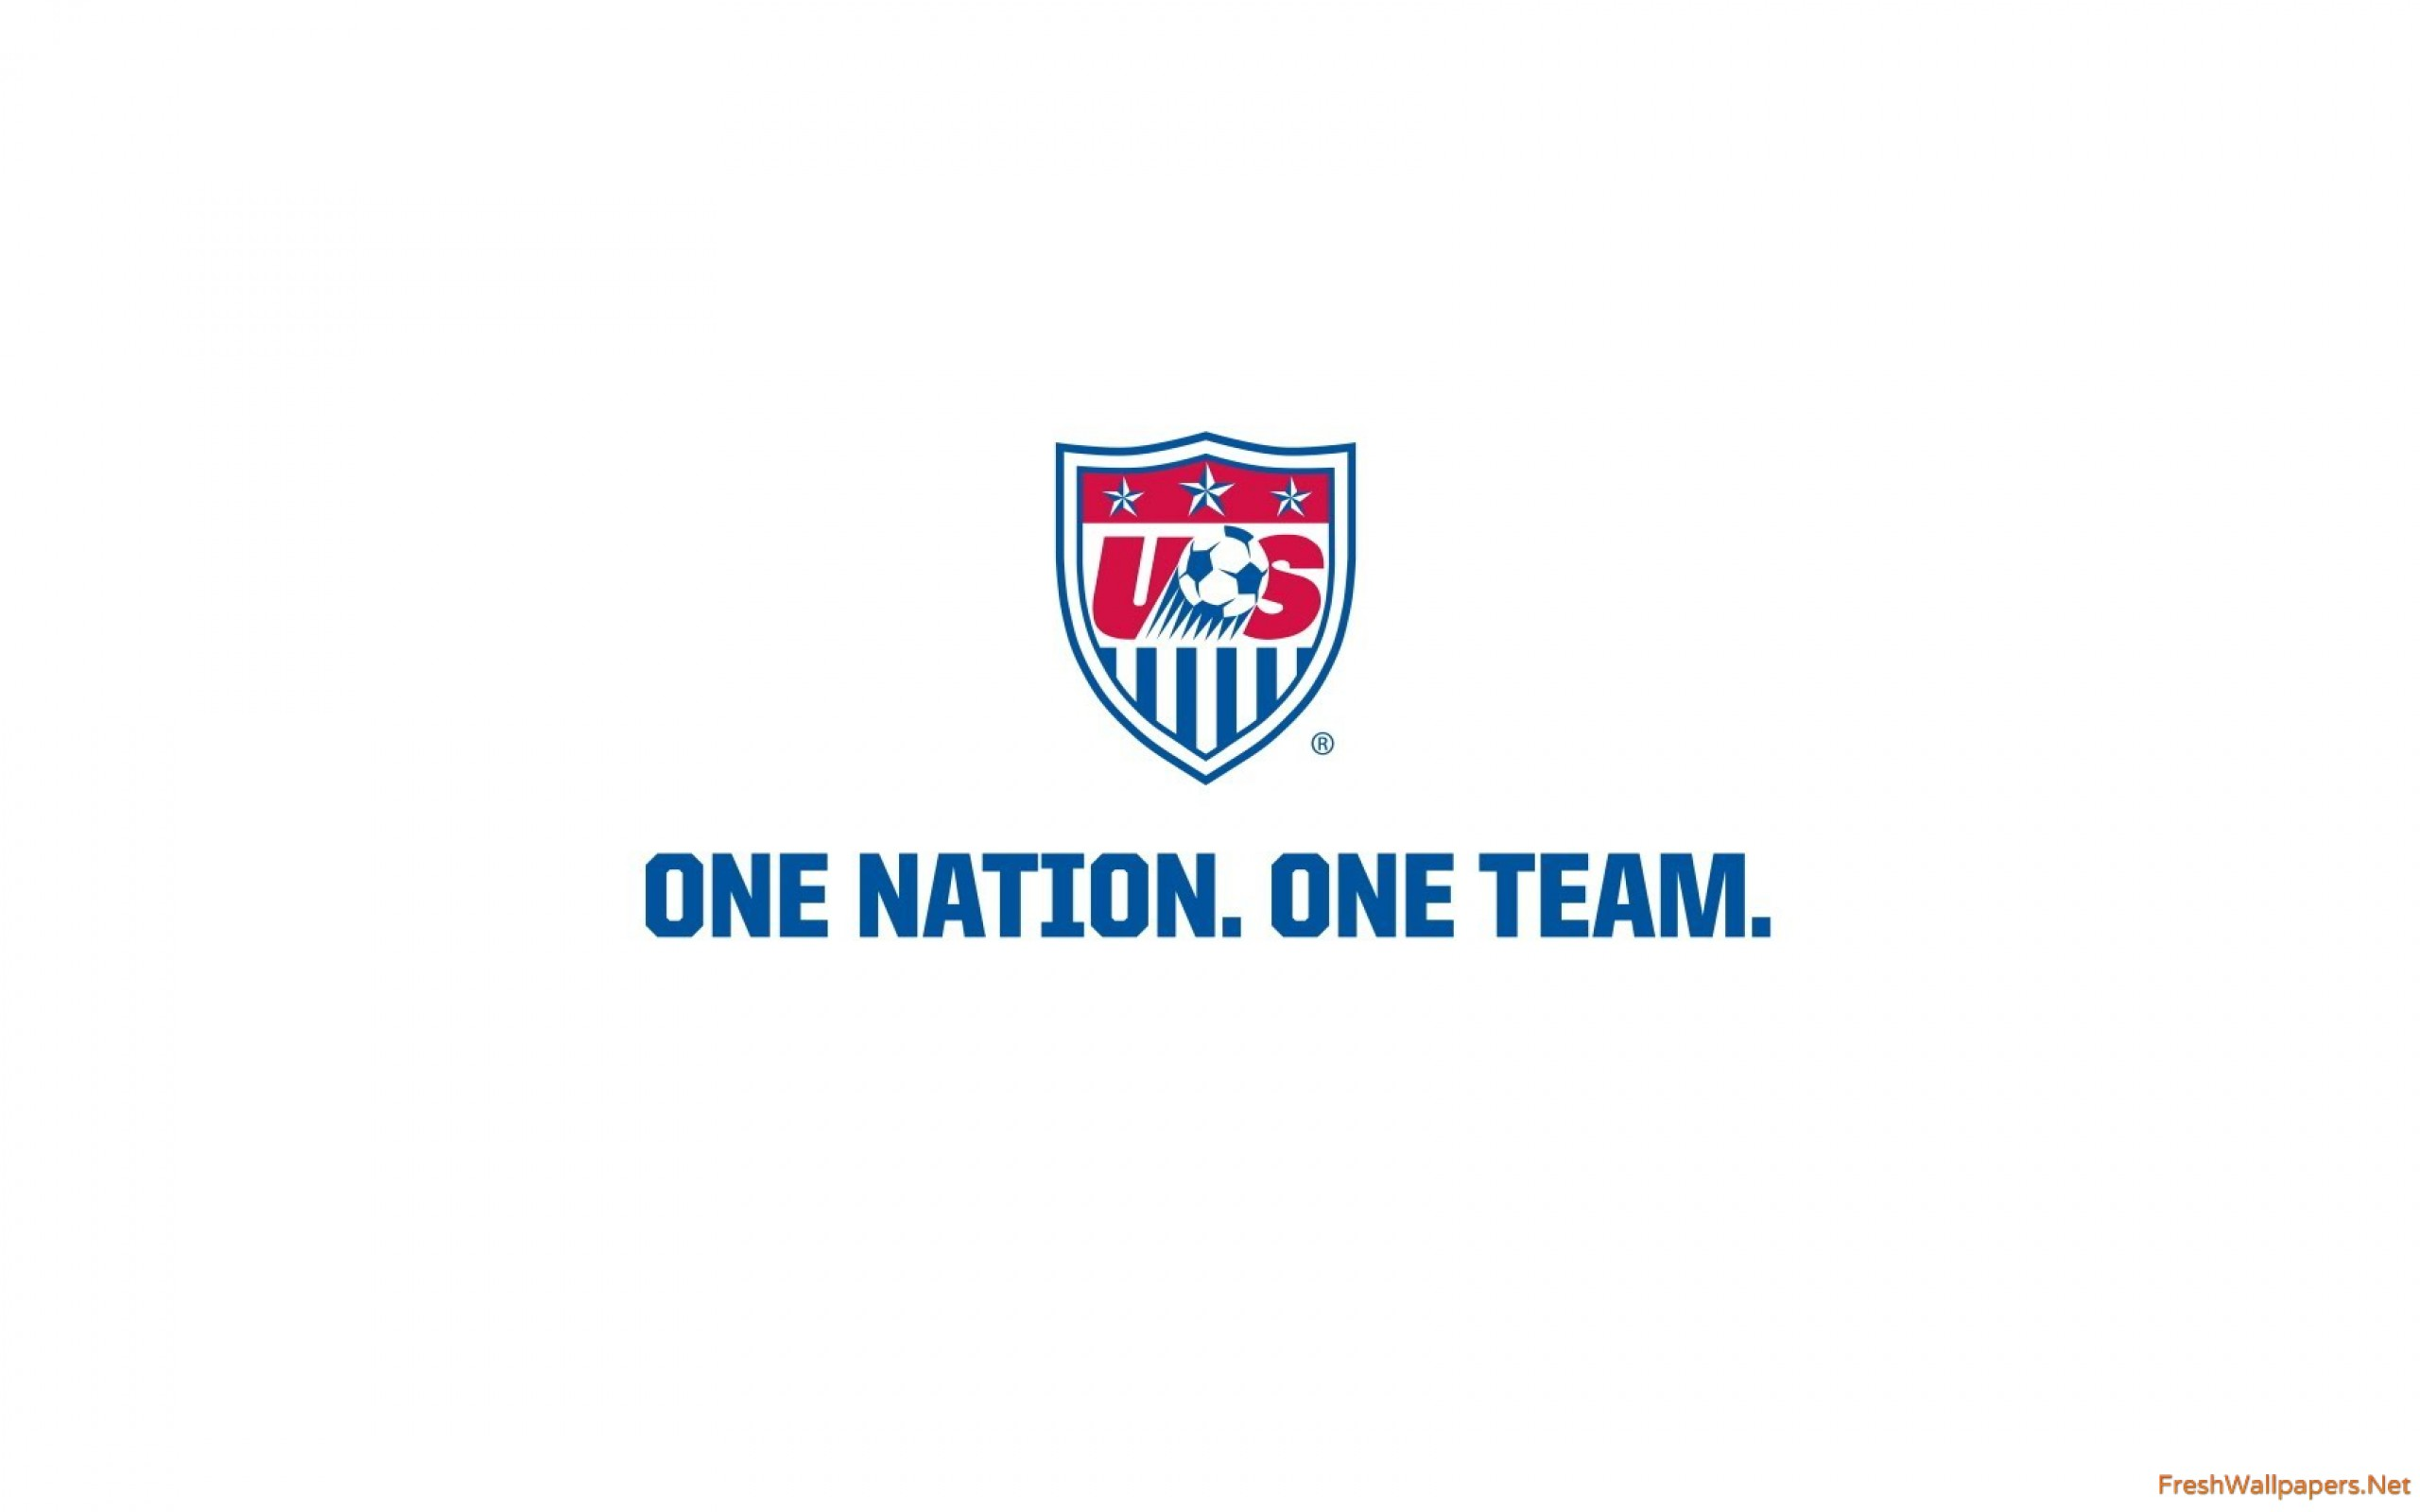 Usmnt one nation one team wallpapers Freshwallpapers 2560x1600